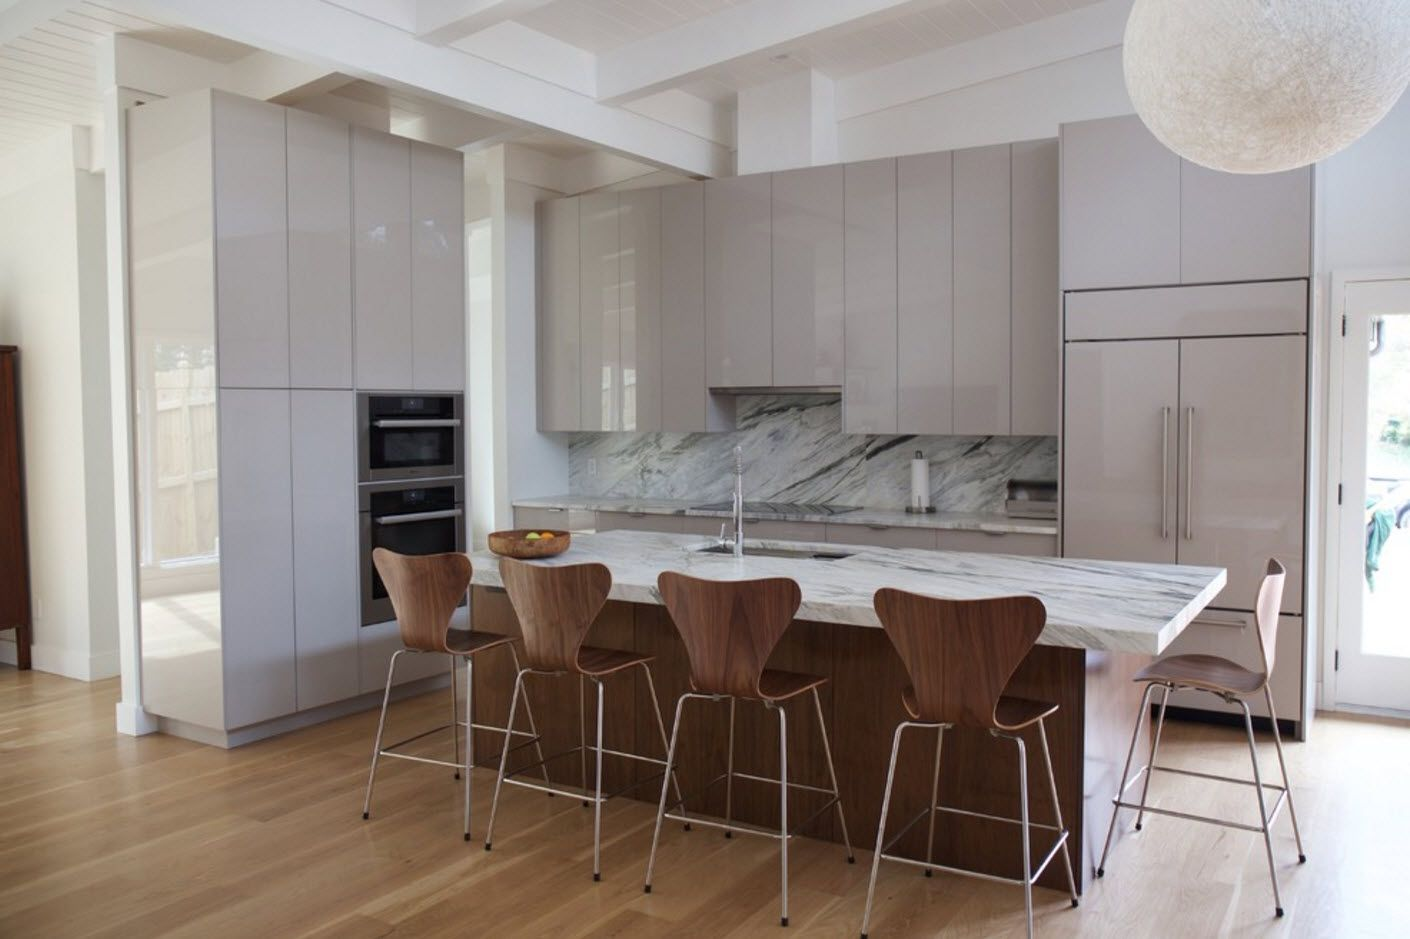 Nice molk chocolate wooden texture and color of chairs and kitchen island sides